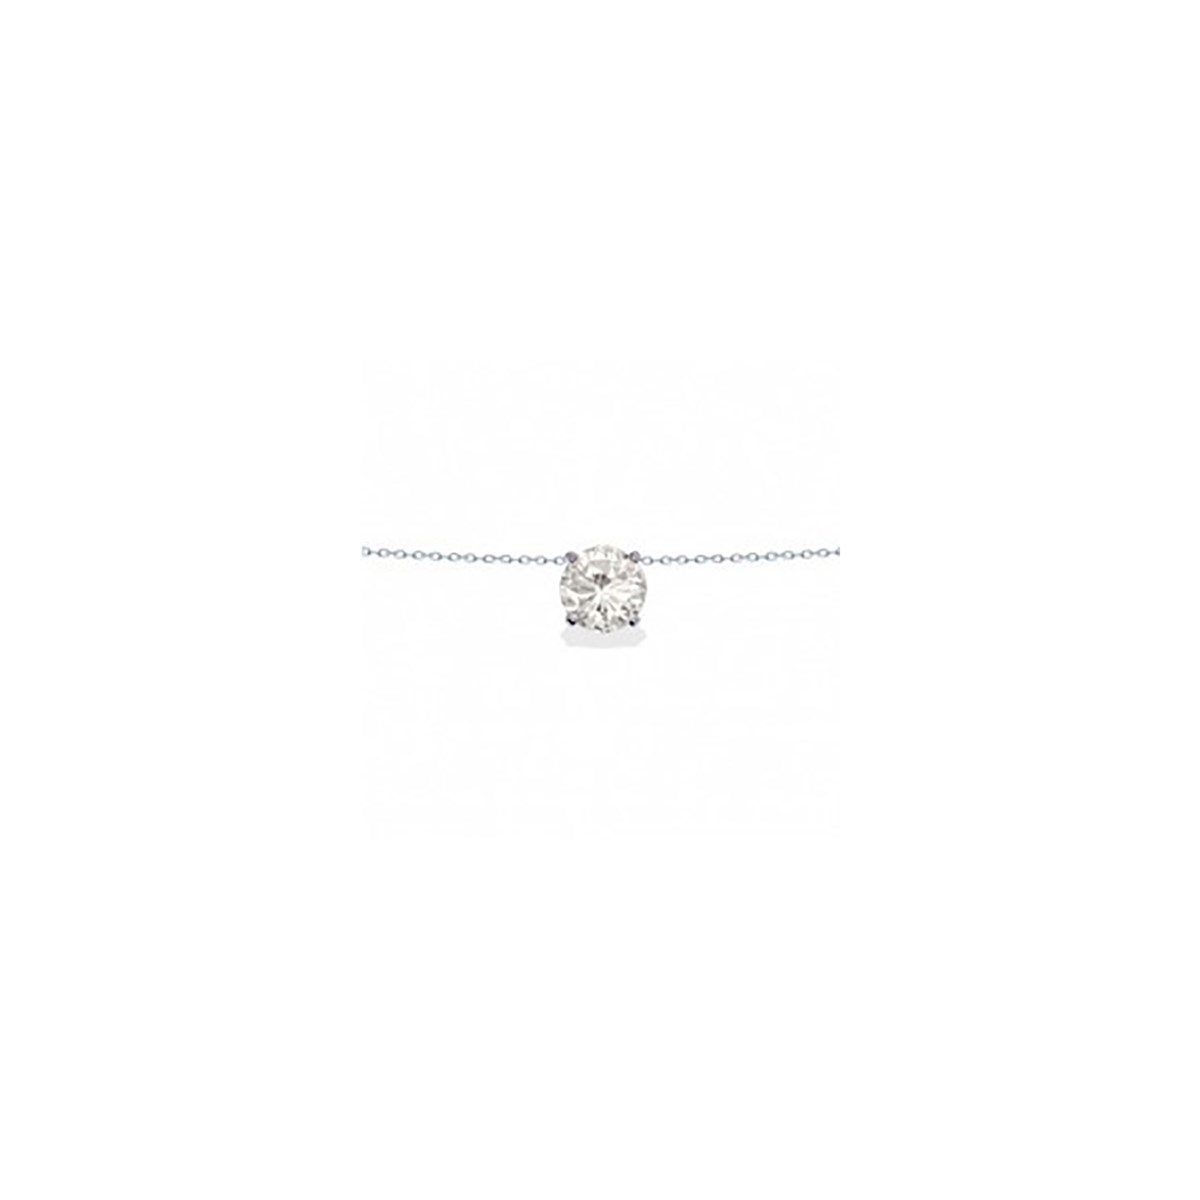 Collier Brillaxis solitaire or blanc 9 carats oxyde